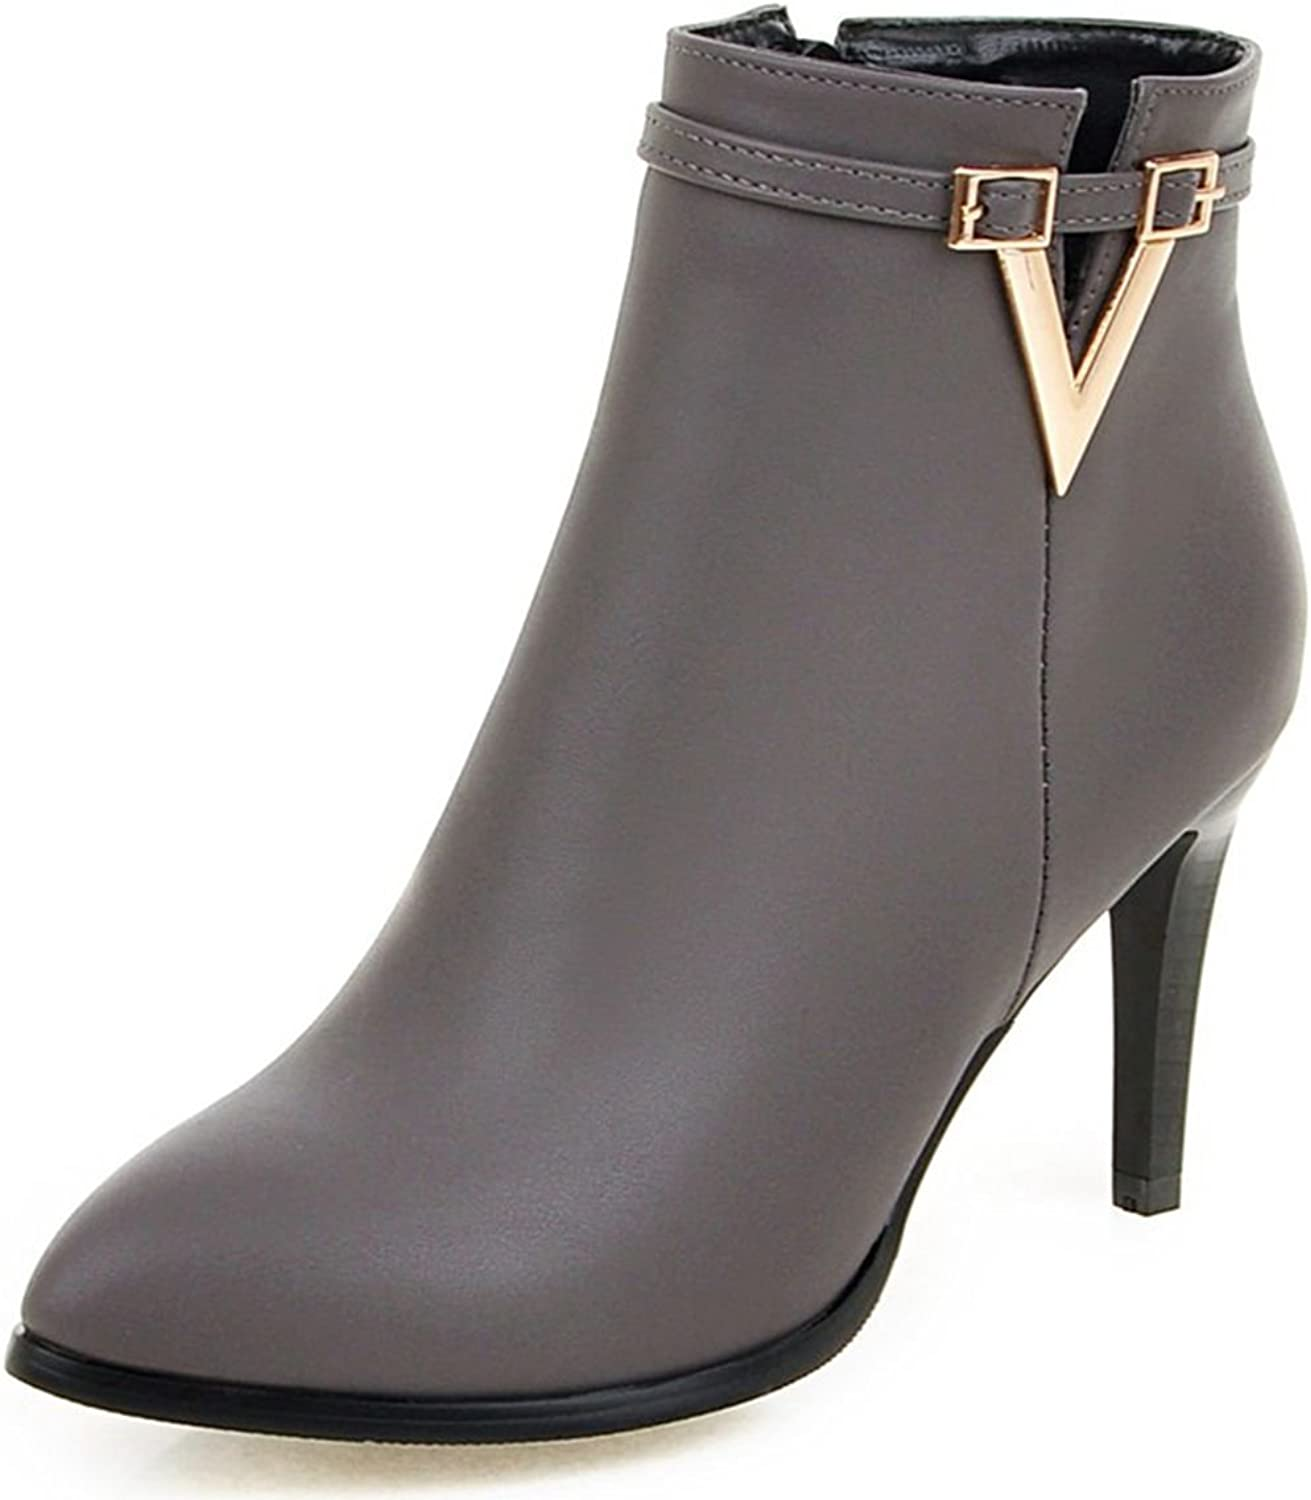 DoraTasia Women's Buckle Strap Pointed Toe Metal V Decoration High Heel Ankle Boots